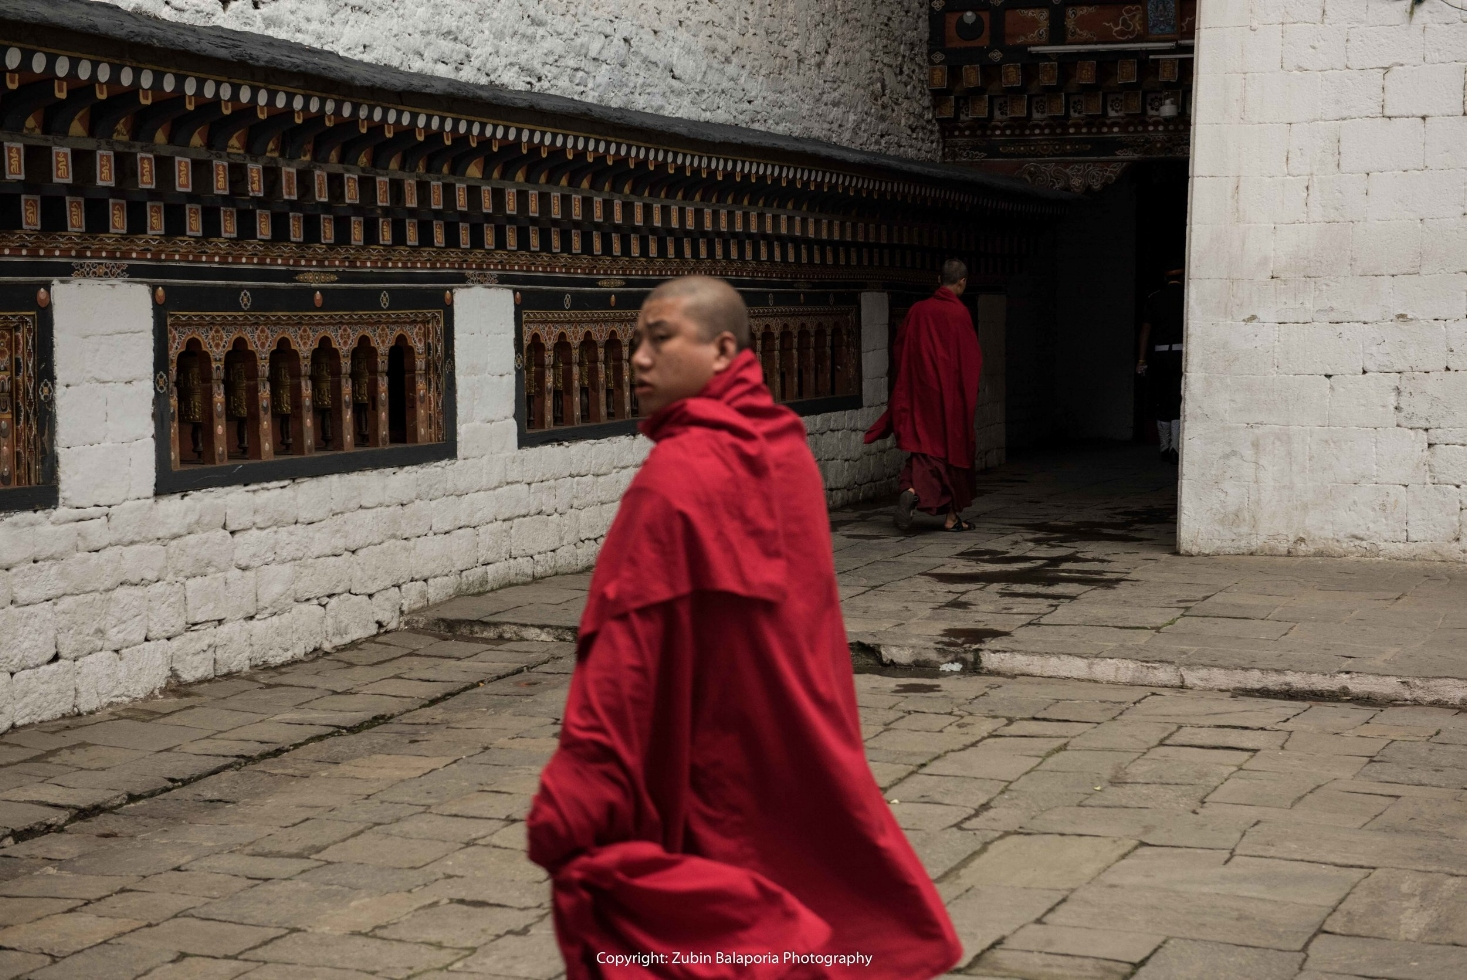 The Spinning Monk